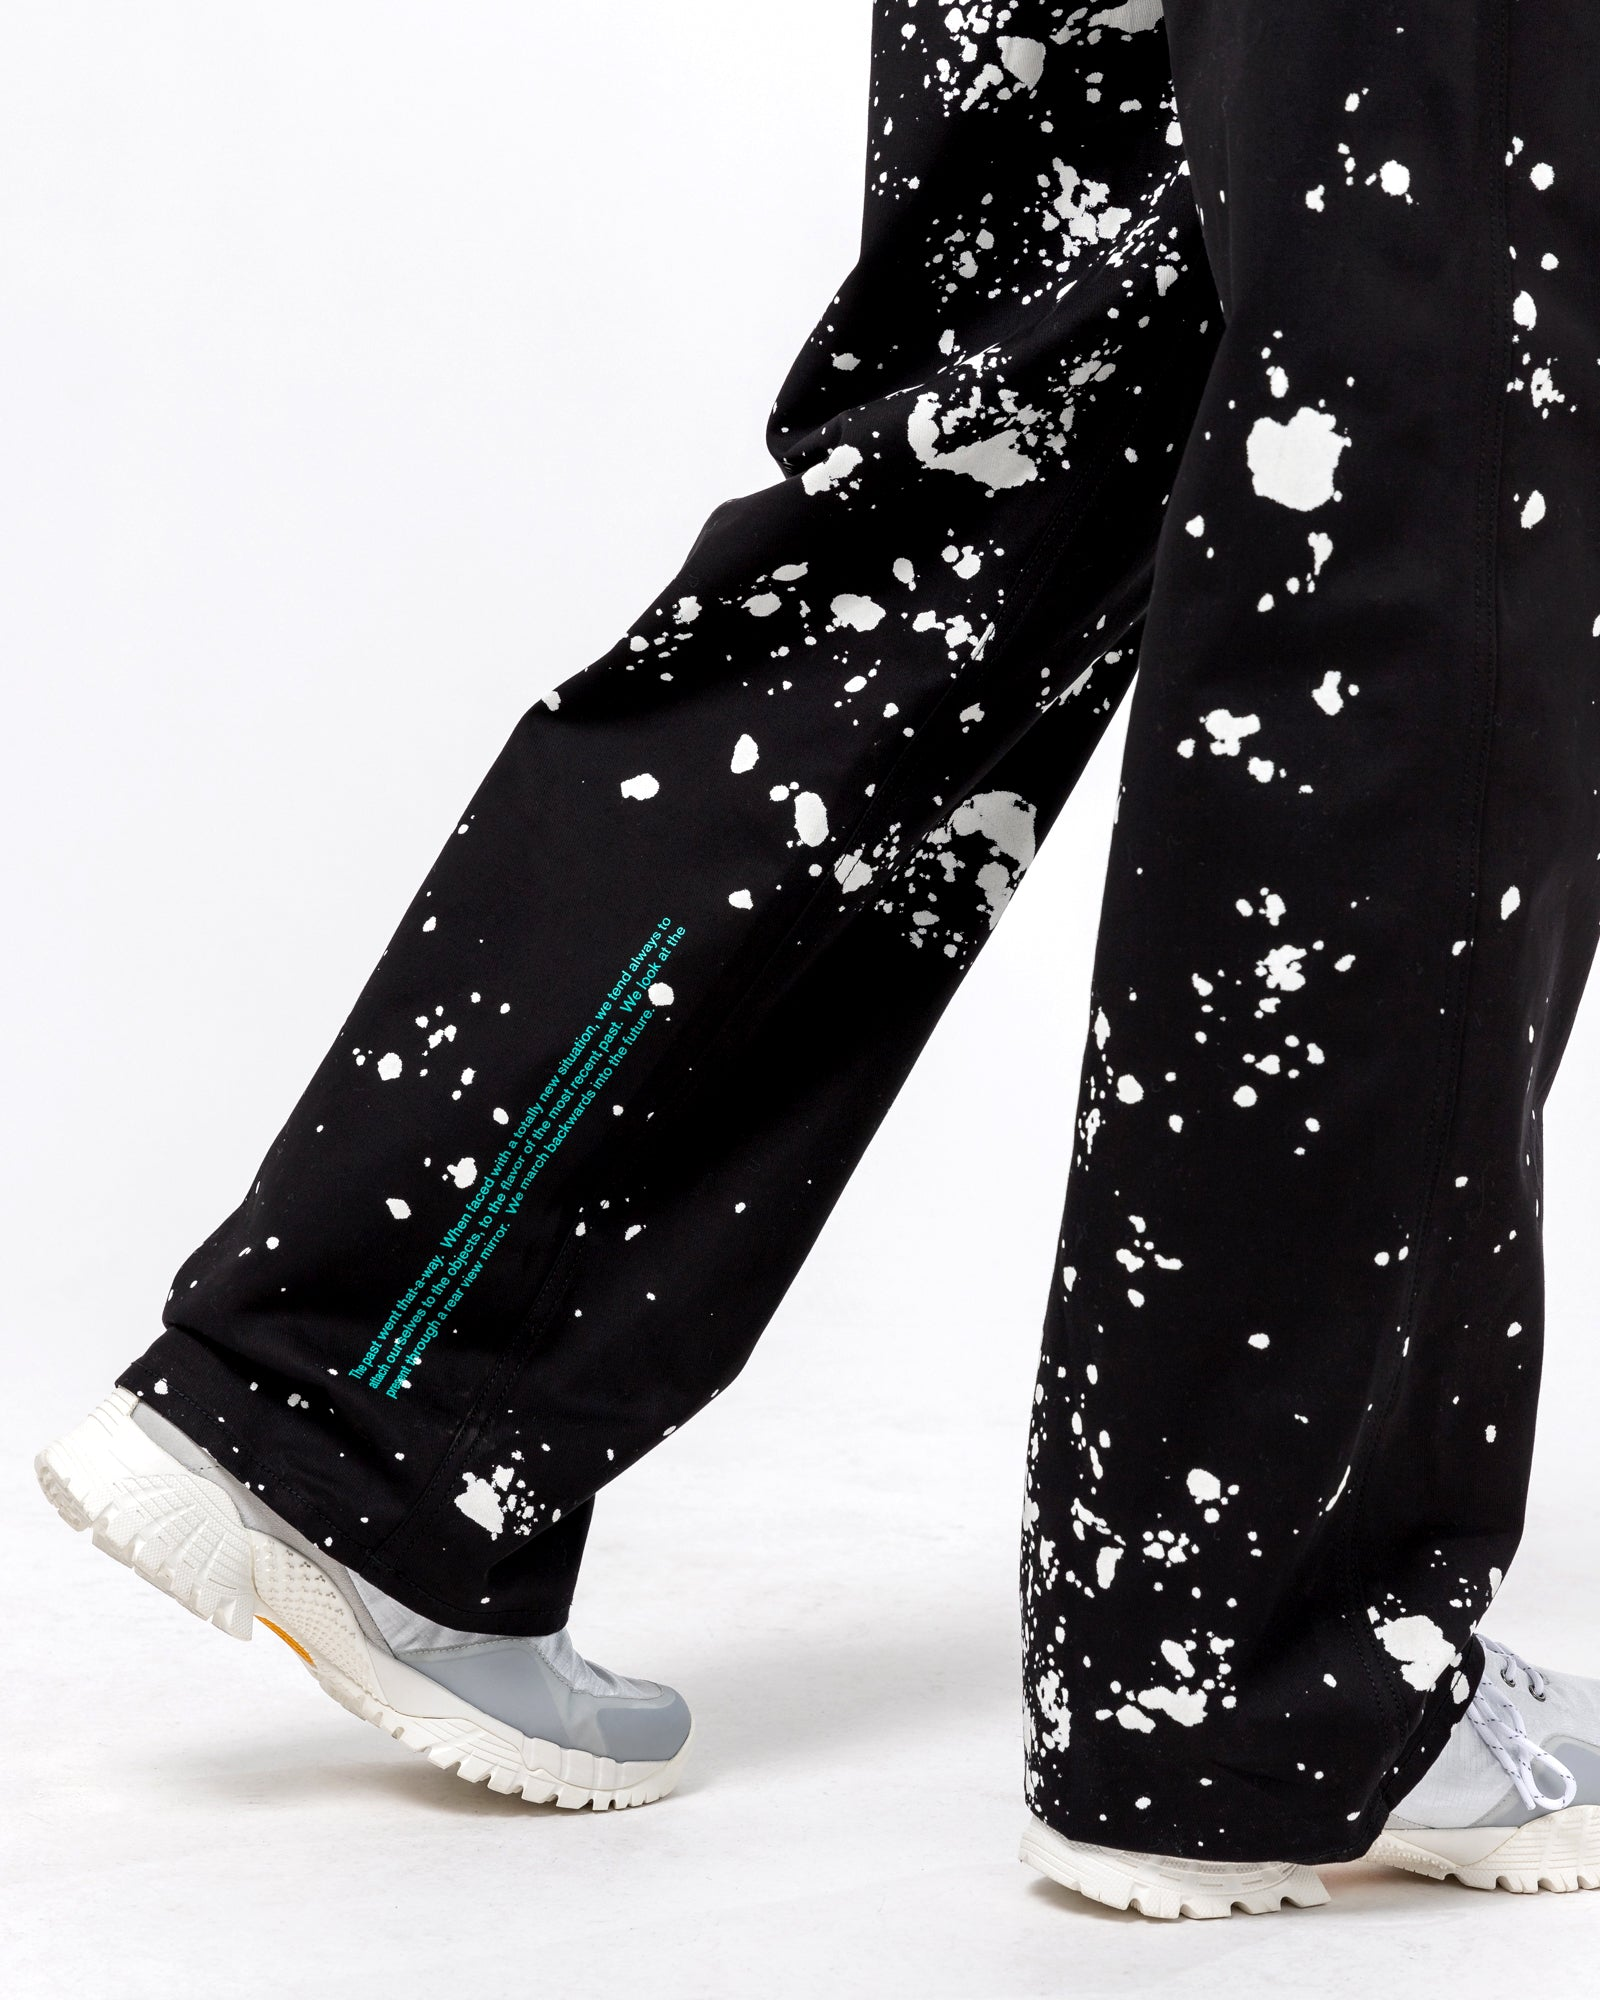 Orion Splatter Pant in Black & White